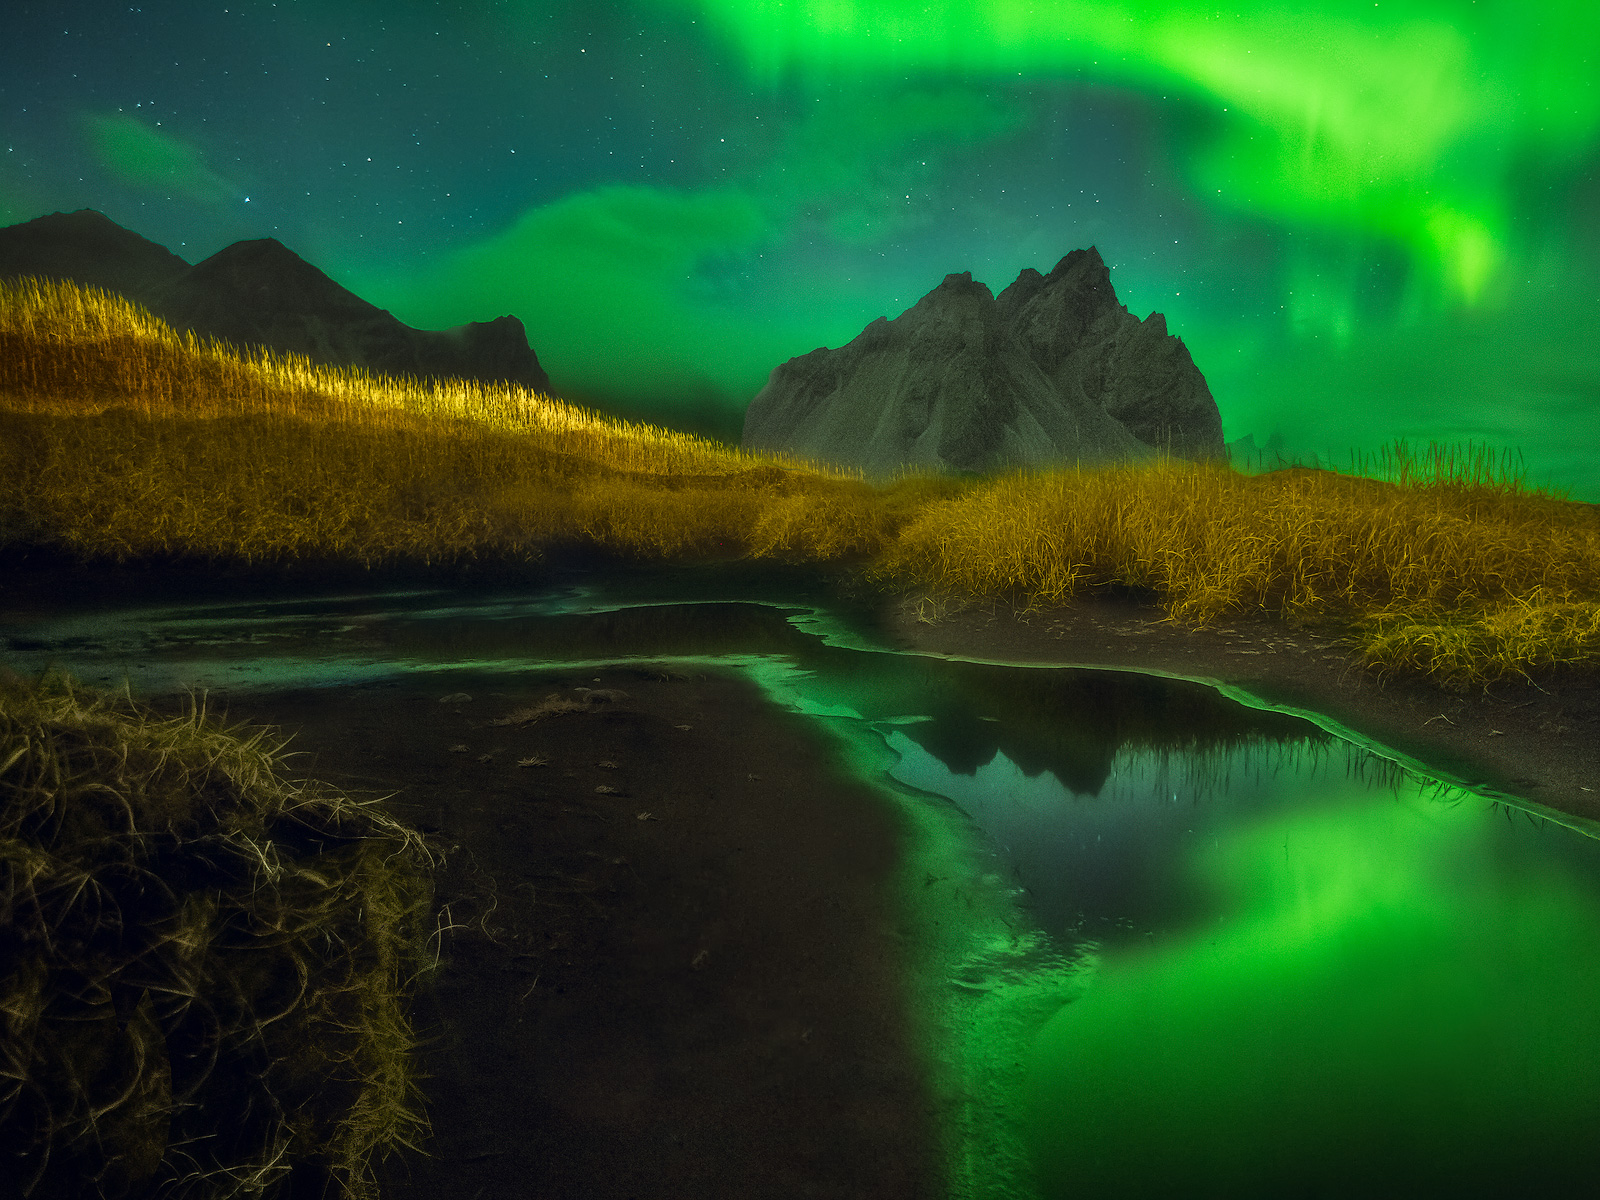 aurora,beach,borealis,eastern,europe,field,hill,hofn,iceland,klifatindur,mountain,northern lights,pond,pool,sand,south,southern,the northern lights